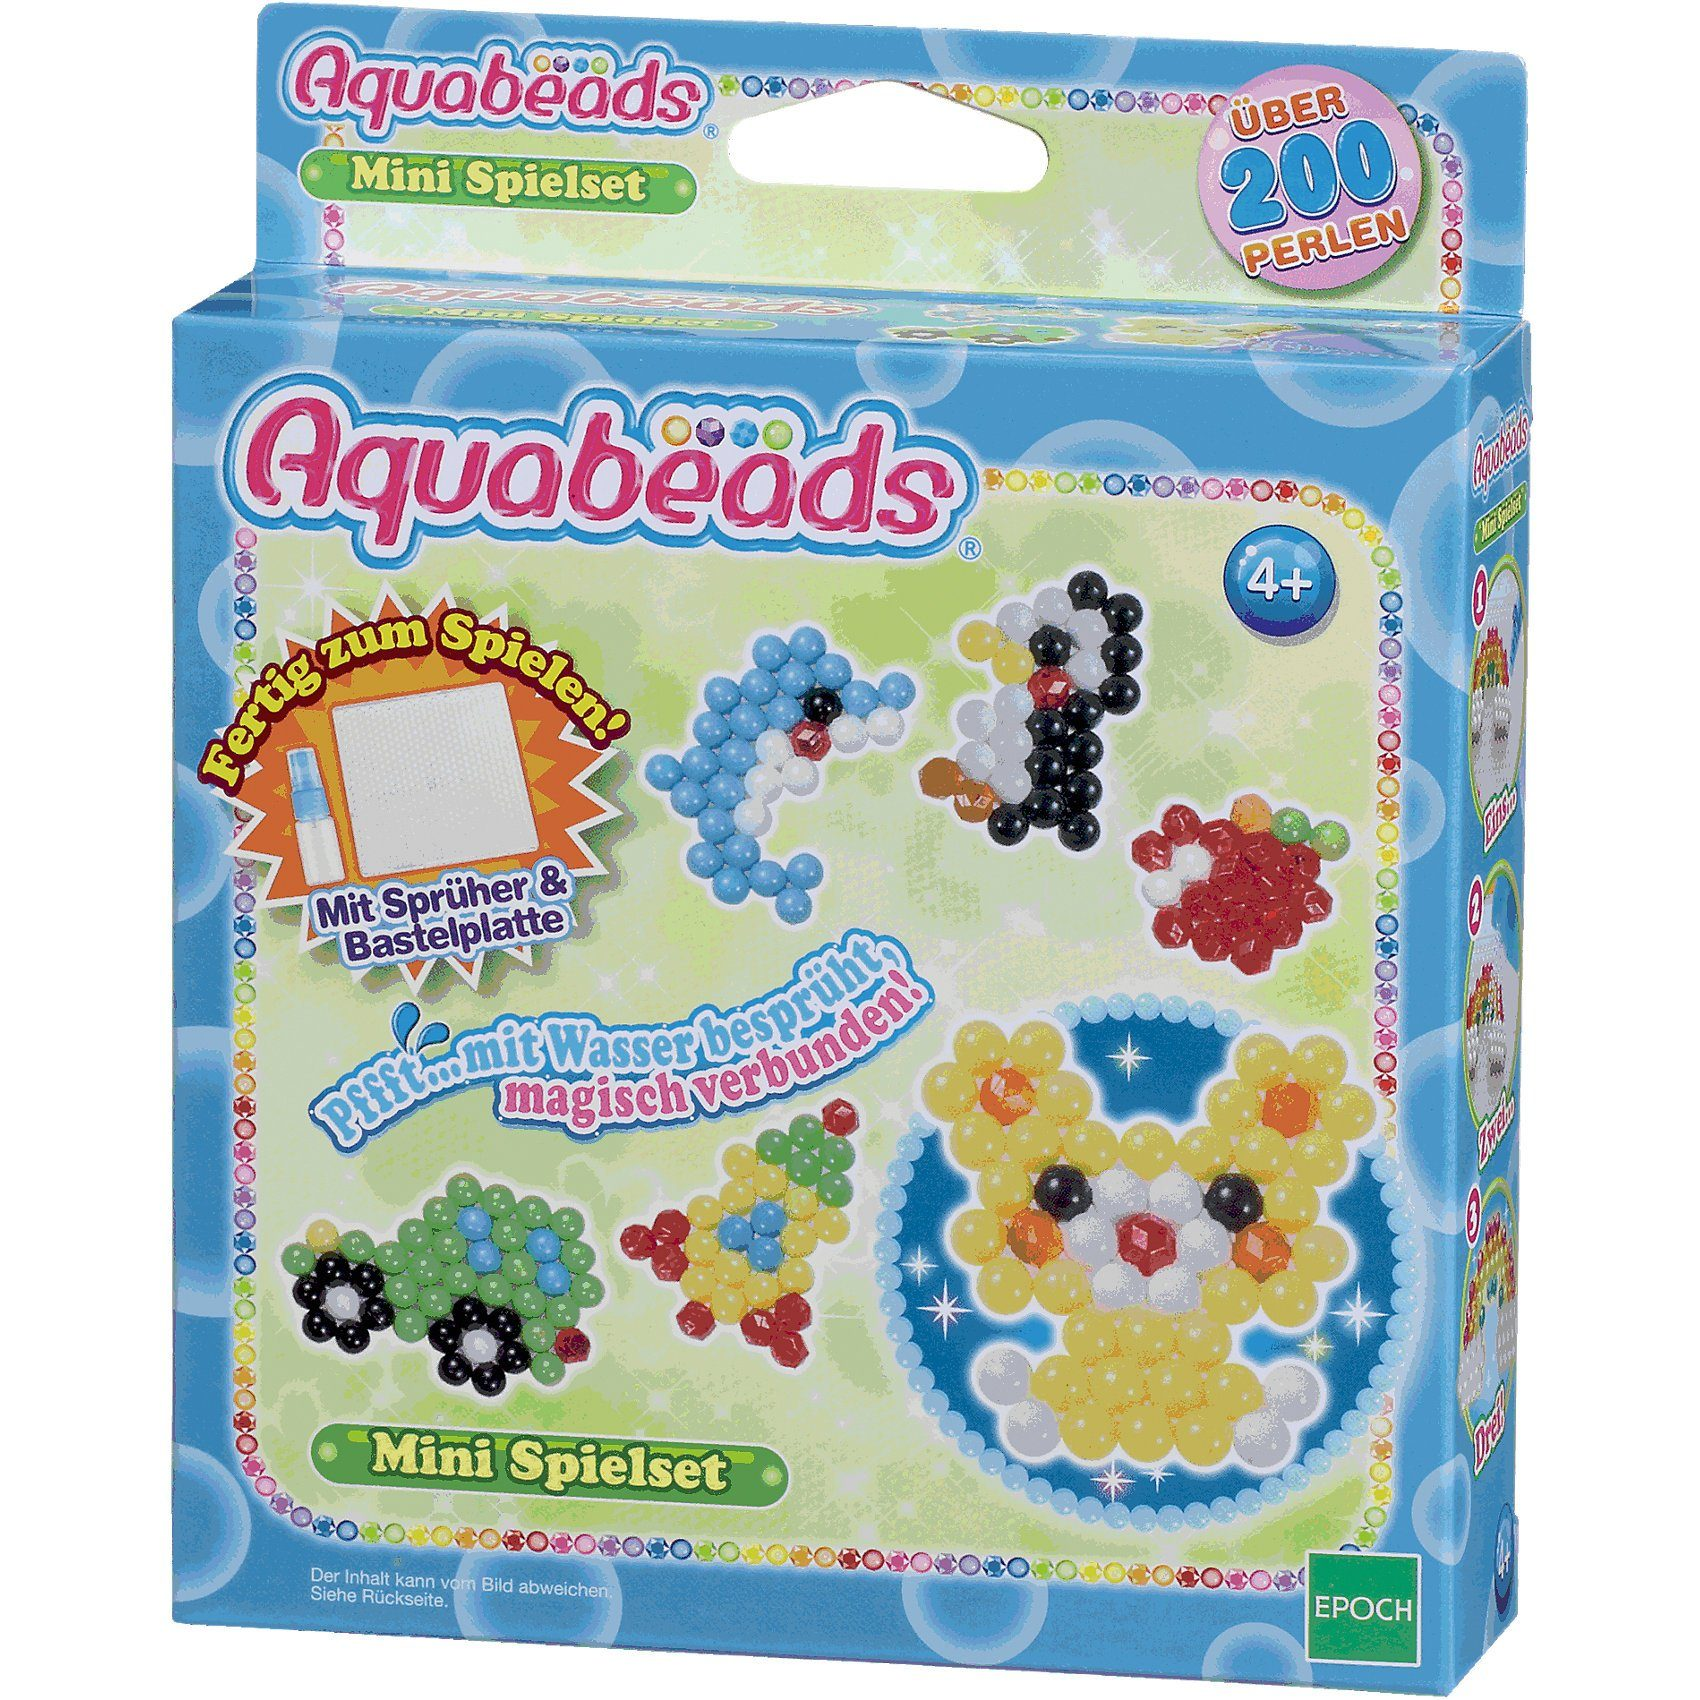 Epoch Traumwiesen Aquabeads Mini Spielset